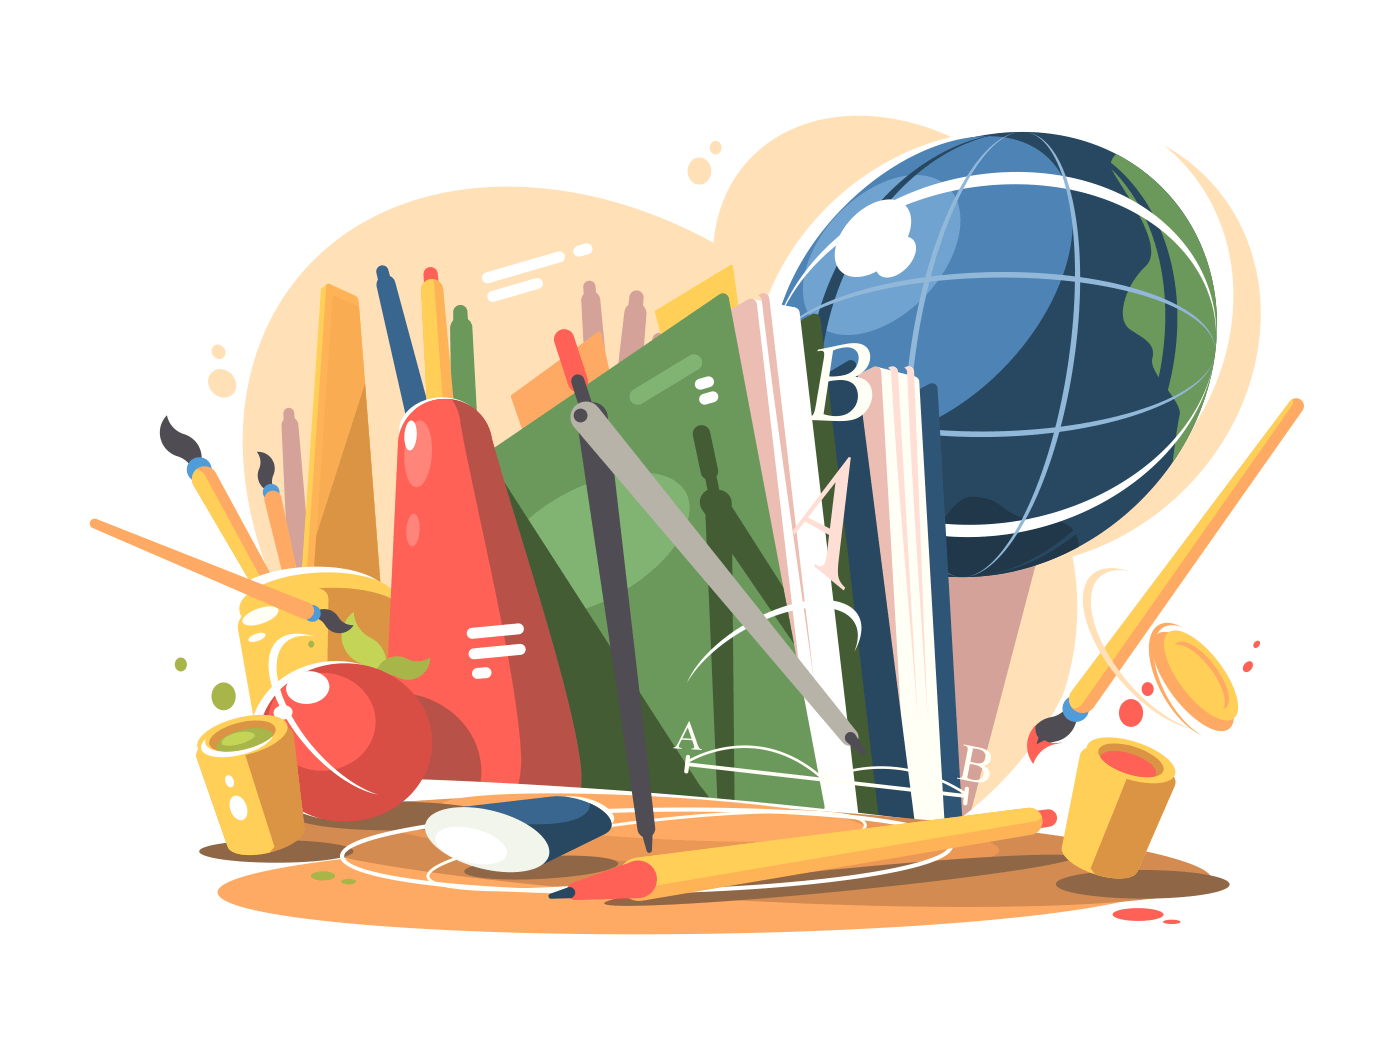 School supplies in a creative style. Globe, notebooks and books. Vector illustration